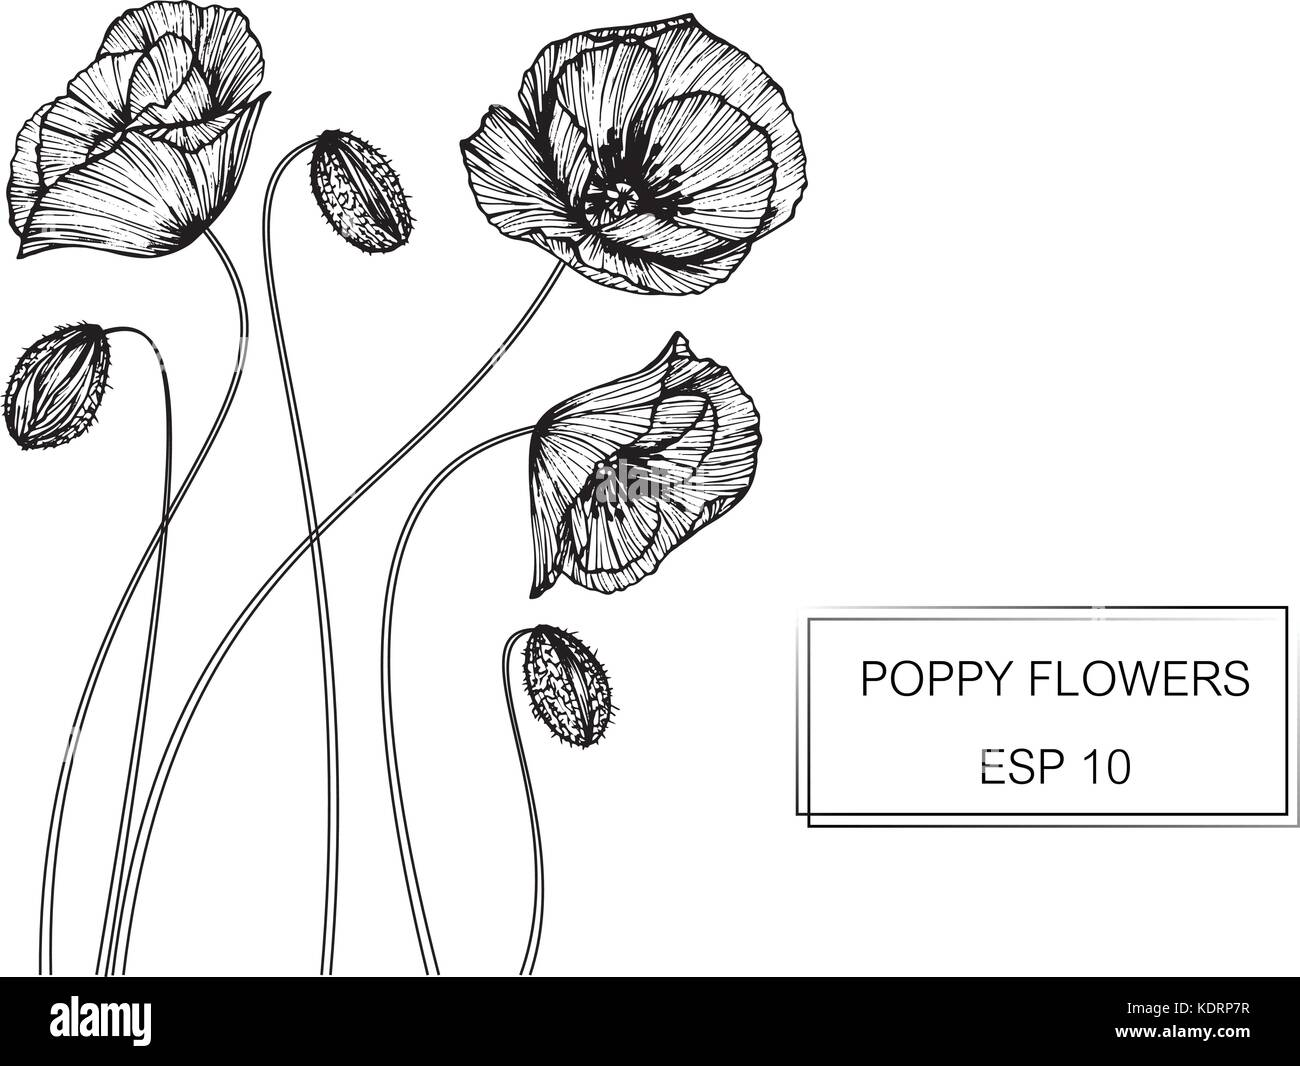 Poppy Flower Drawing Illustration Black And White With Line Art